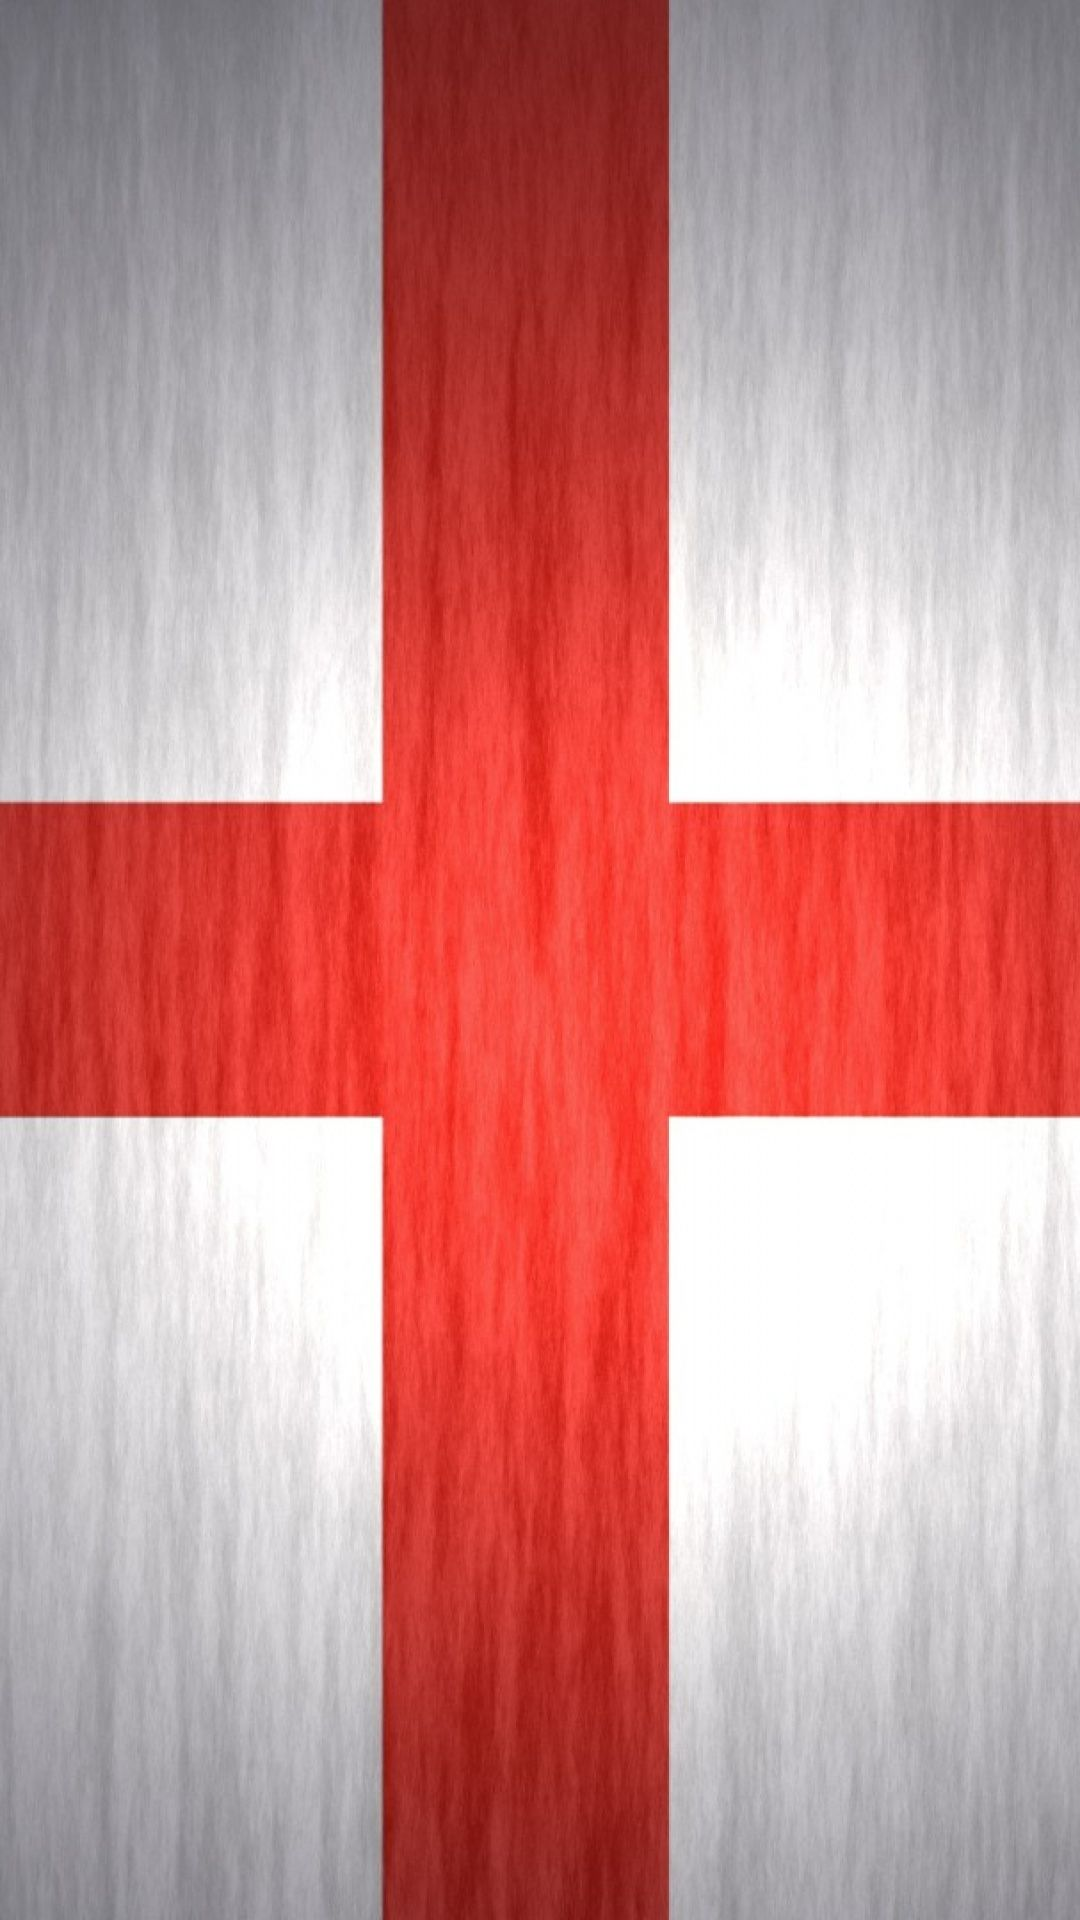 Flag Of England Wallpaper For Android For Wallpaper Idea In